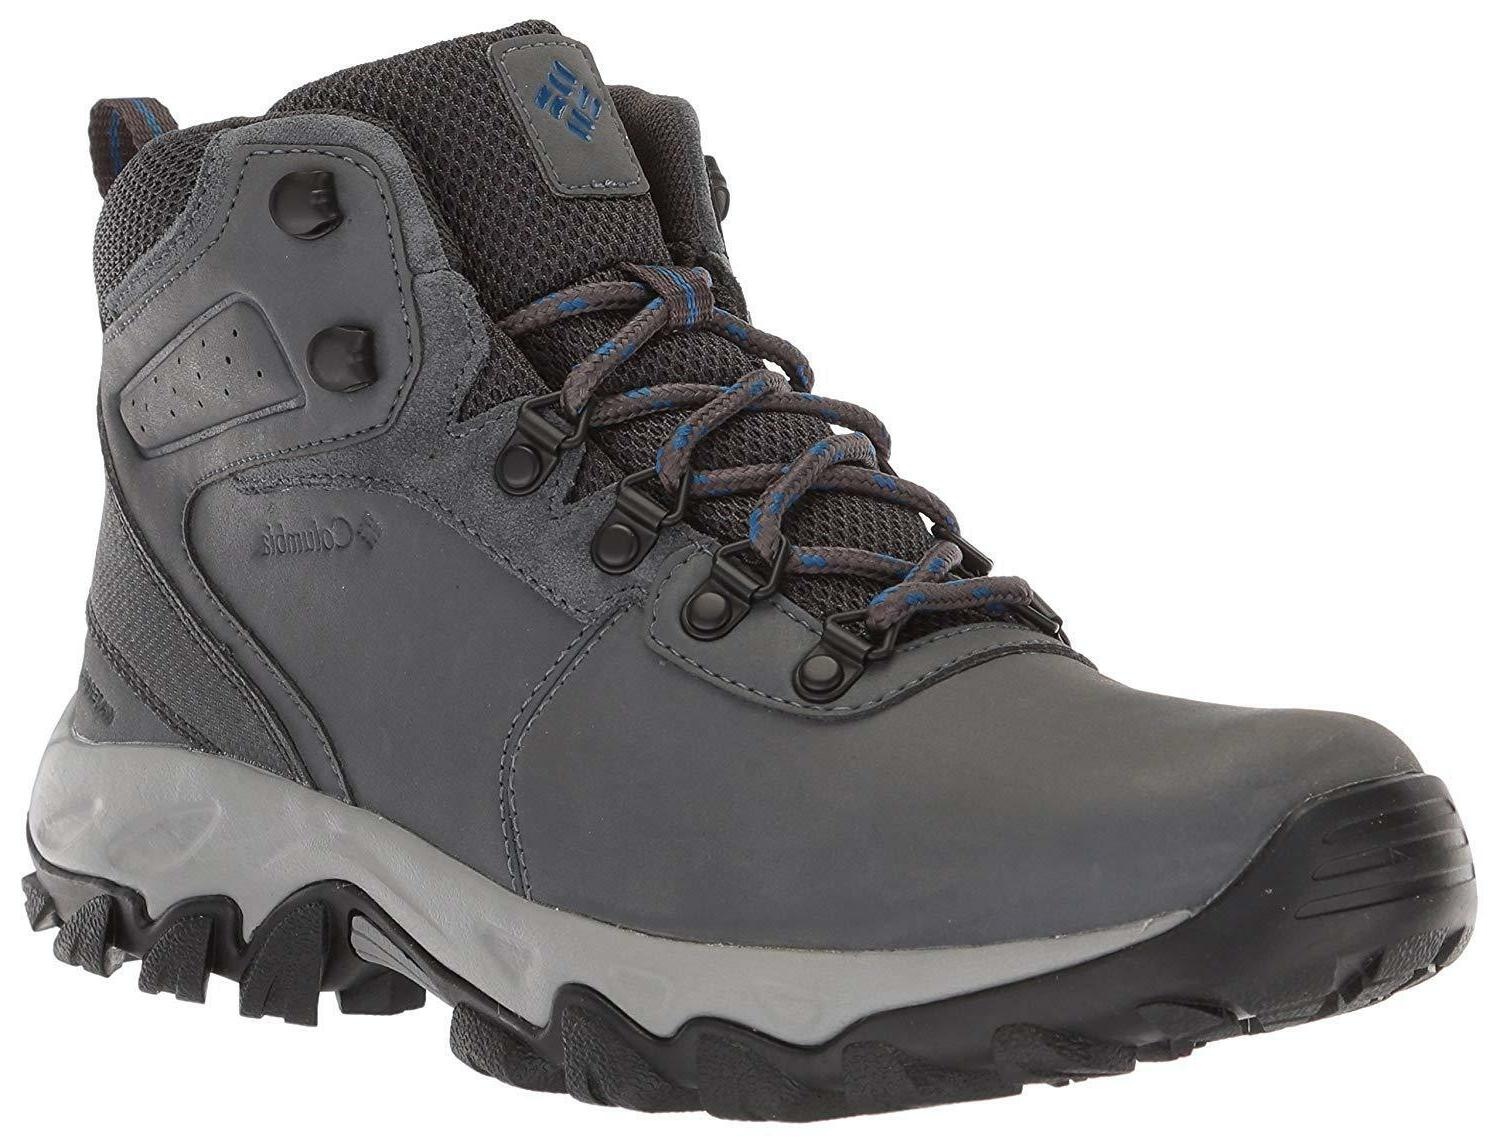 Columbia Plus II Waterproof Hiking Boot